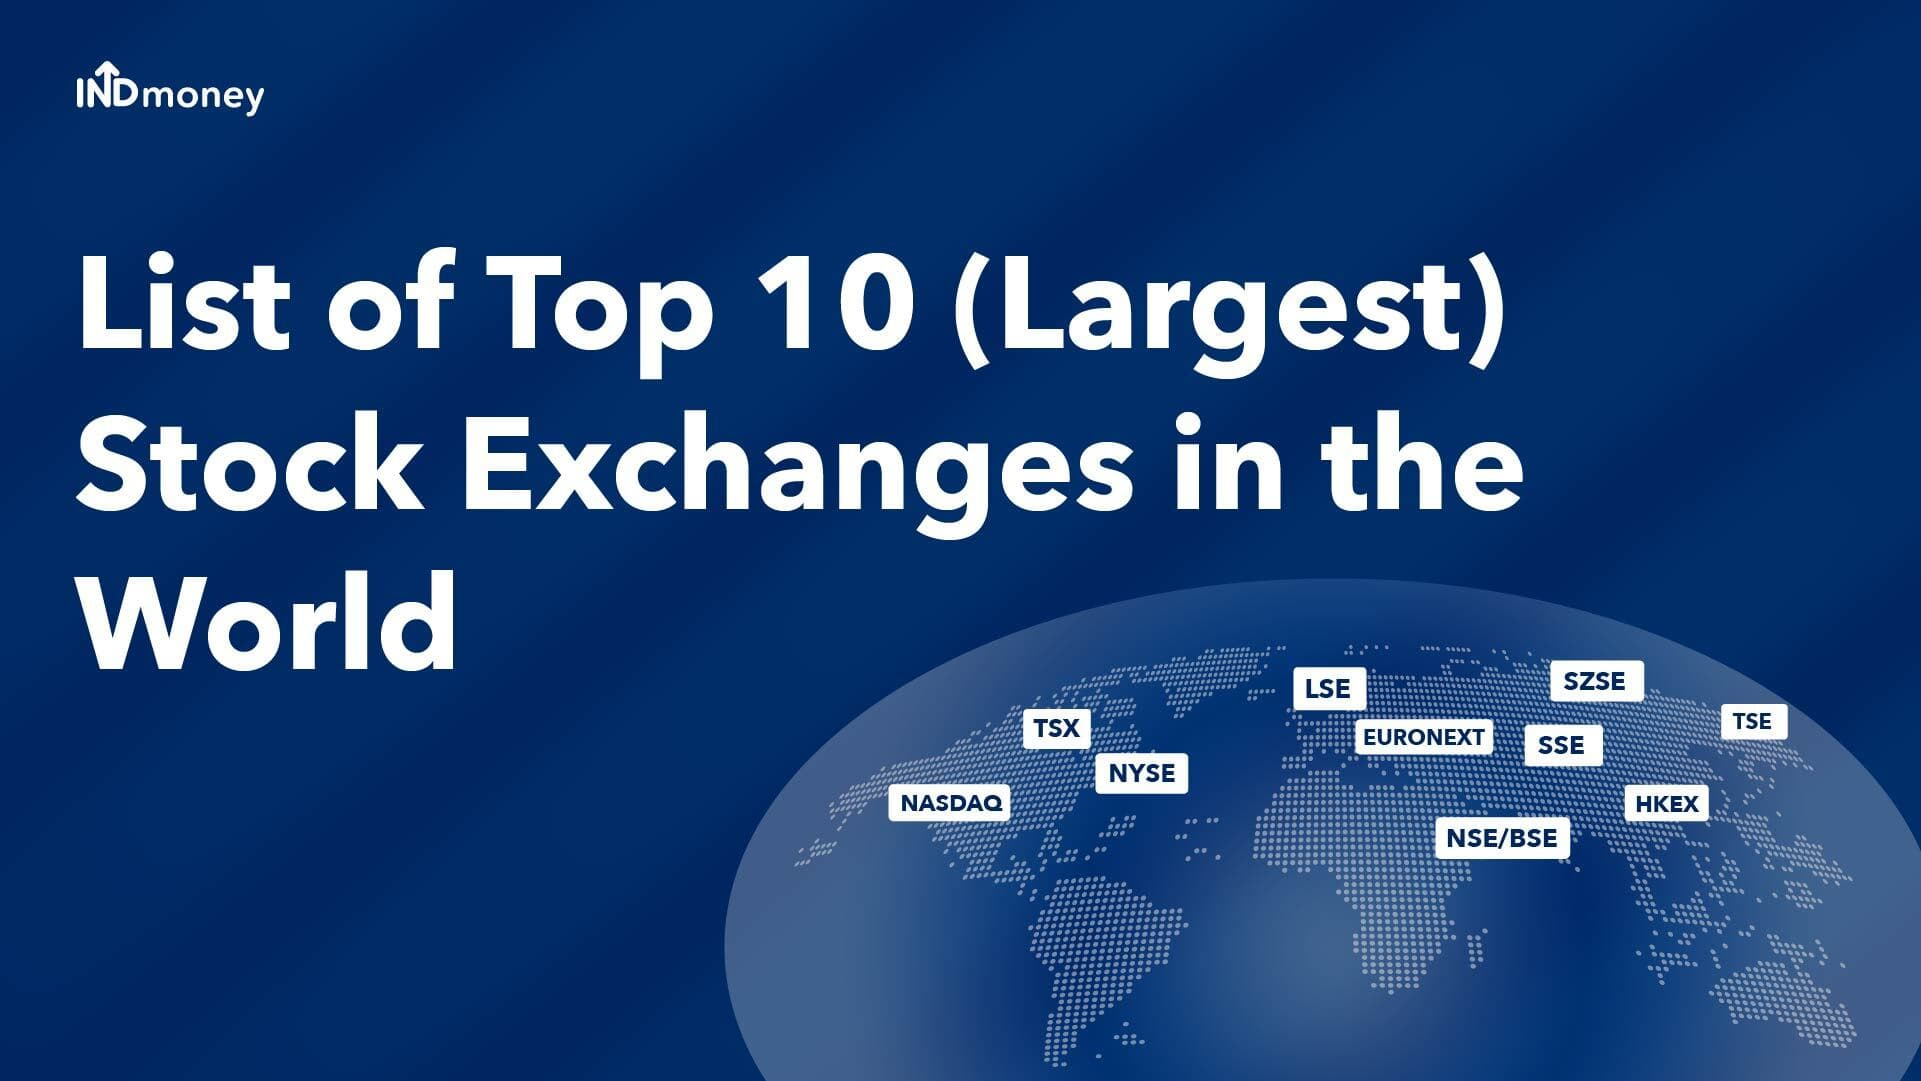 Top 10 (Biggest/Largest) Stock Exchanges in the World  List (2021)